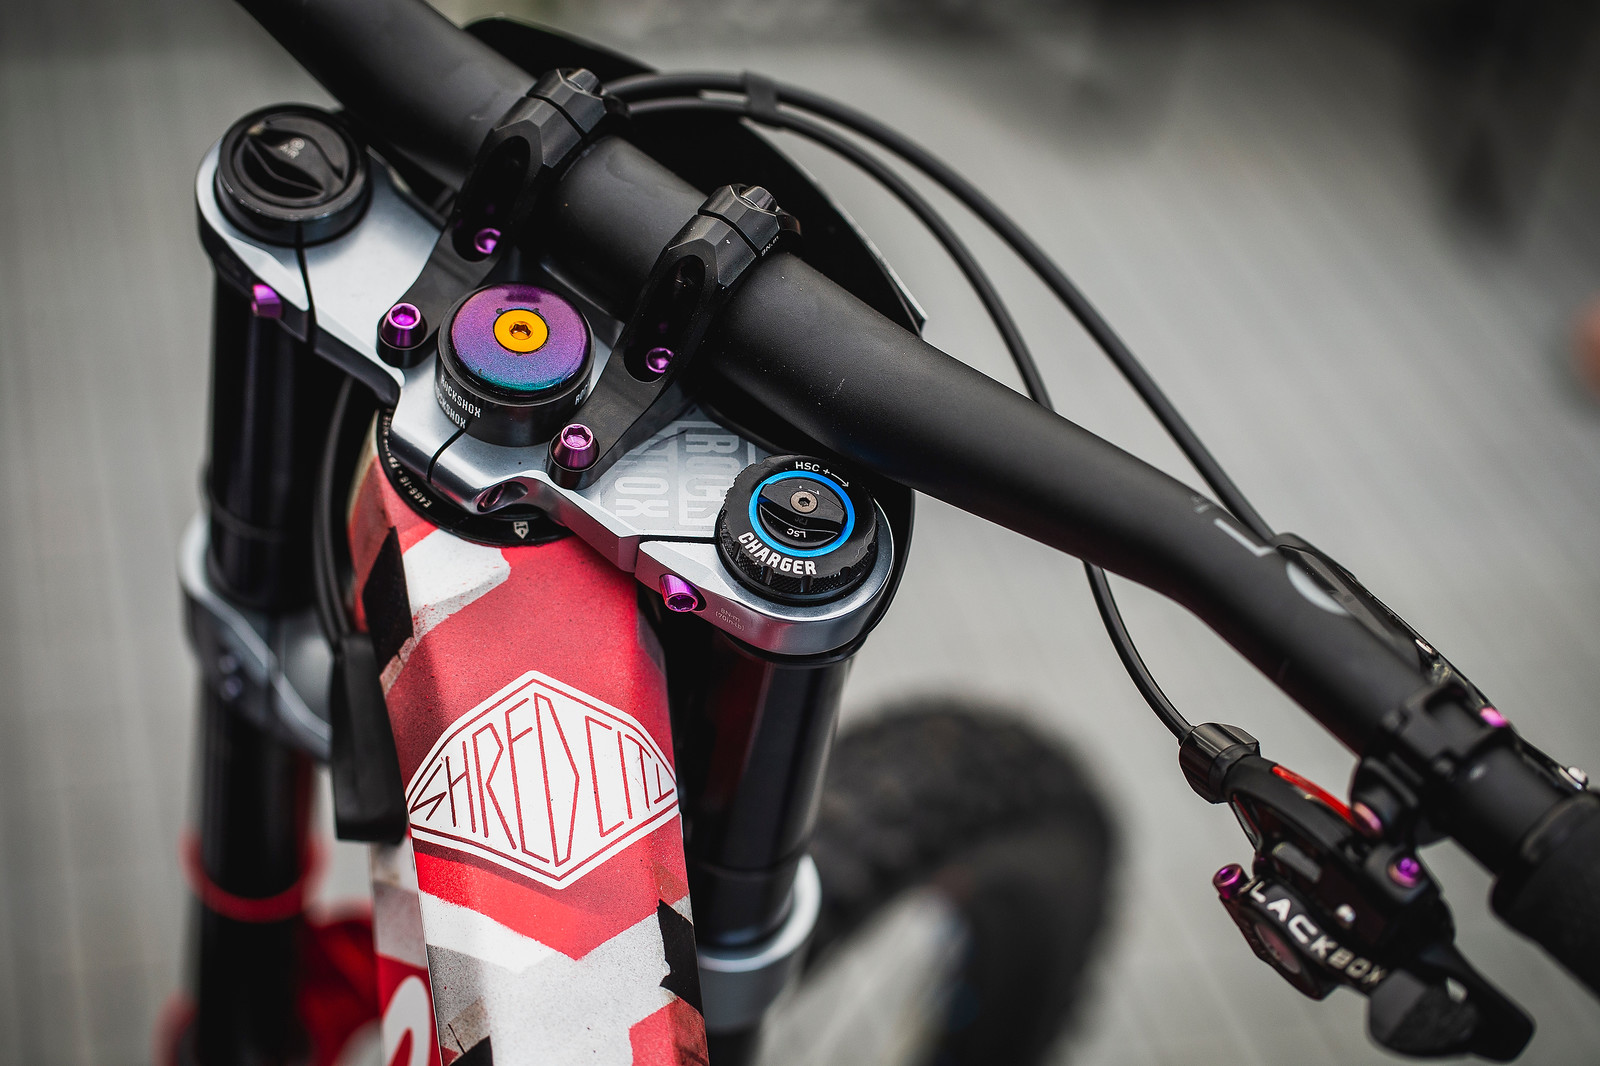 Ti Bolt Oil-Slick Goodness everywhere - PIT BITS - 2019 Val di Sole World Cup Downhill Bike Tech - Mountain Biking Pictures - Vital MTB